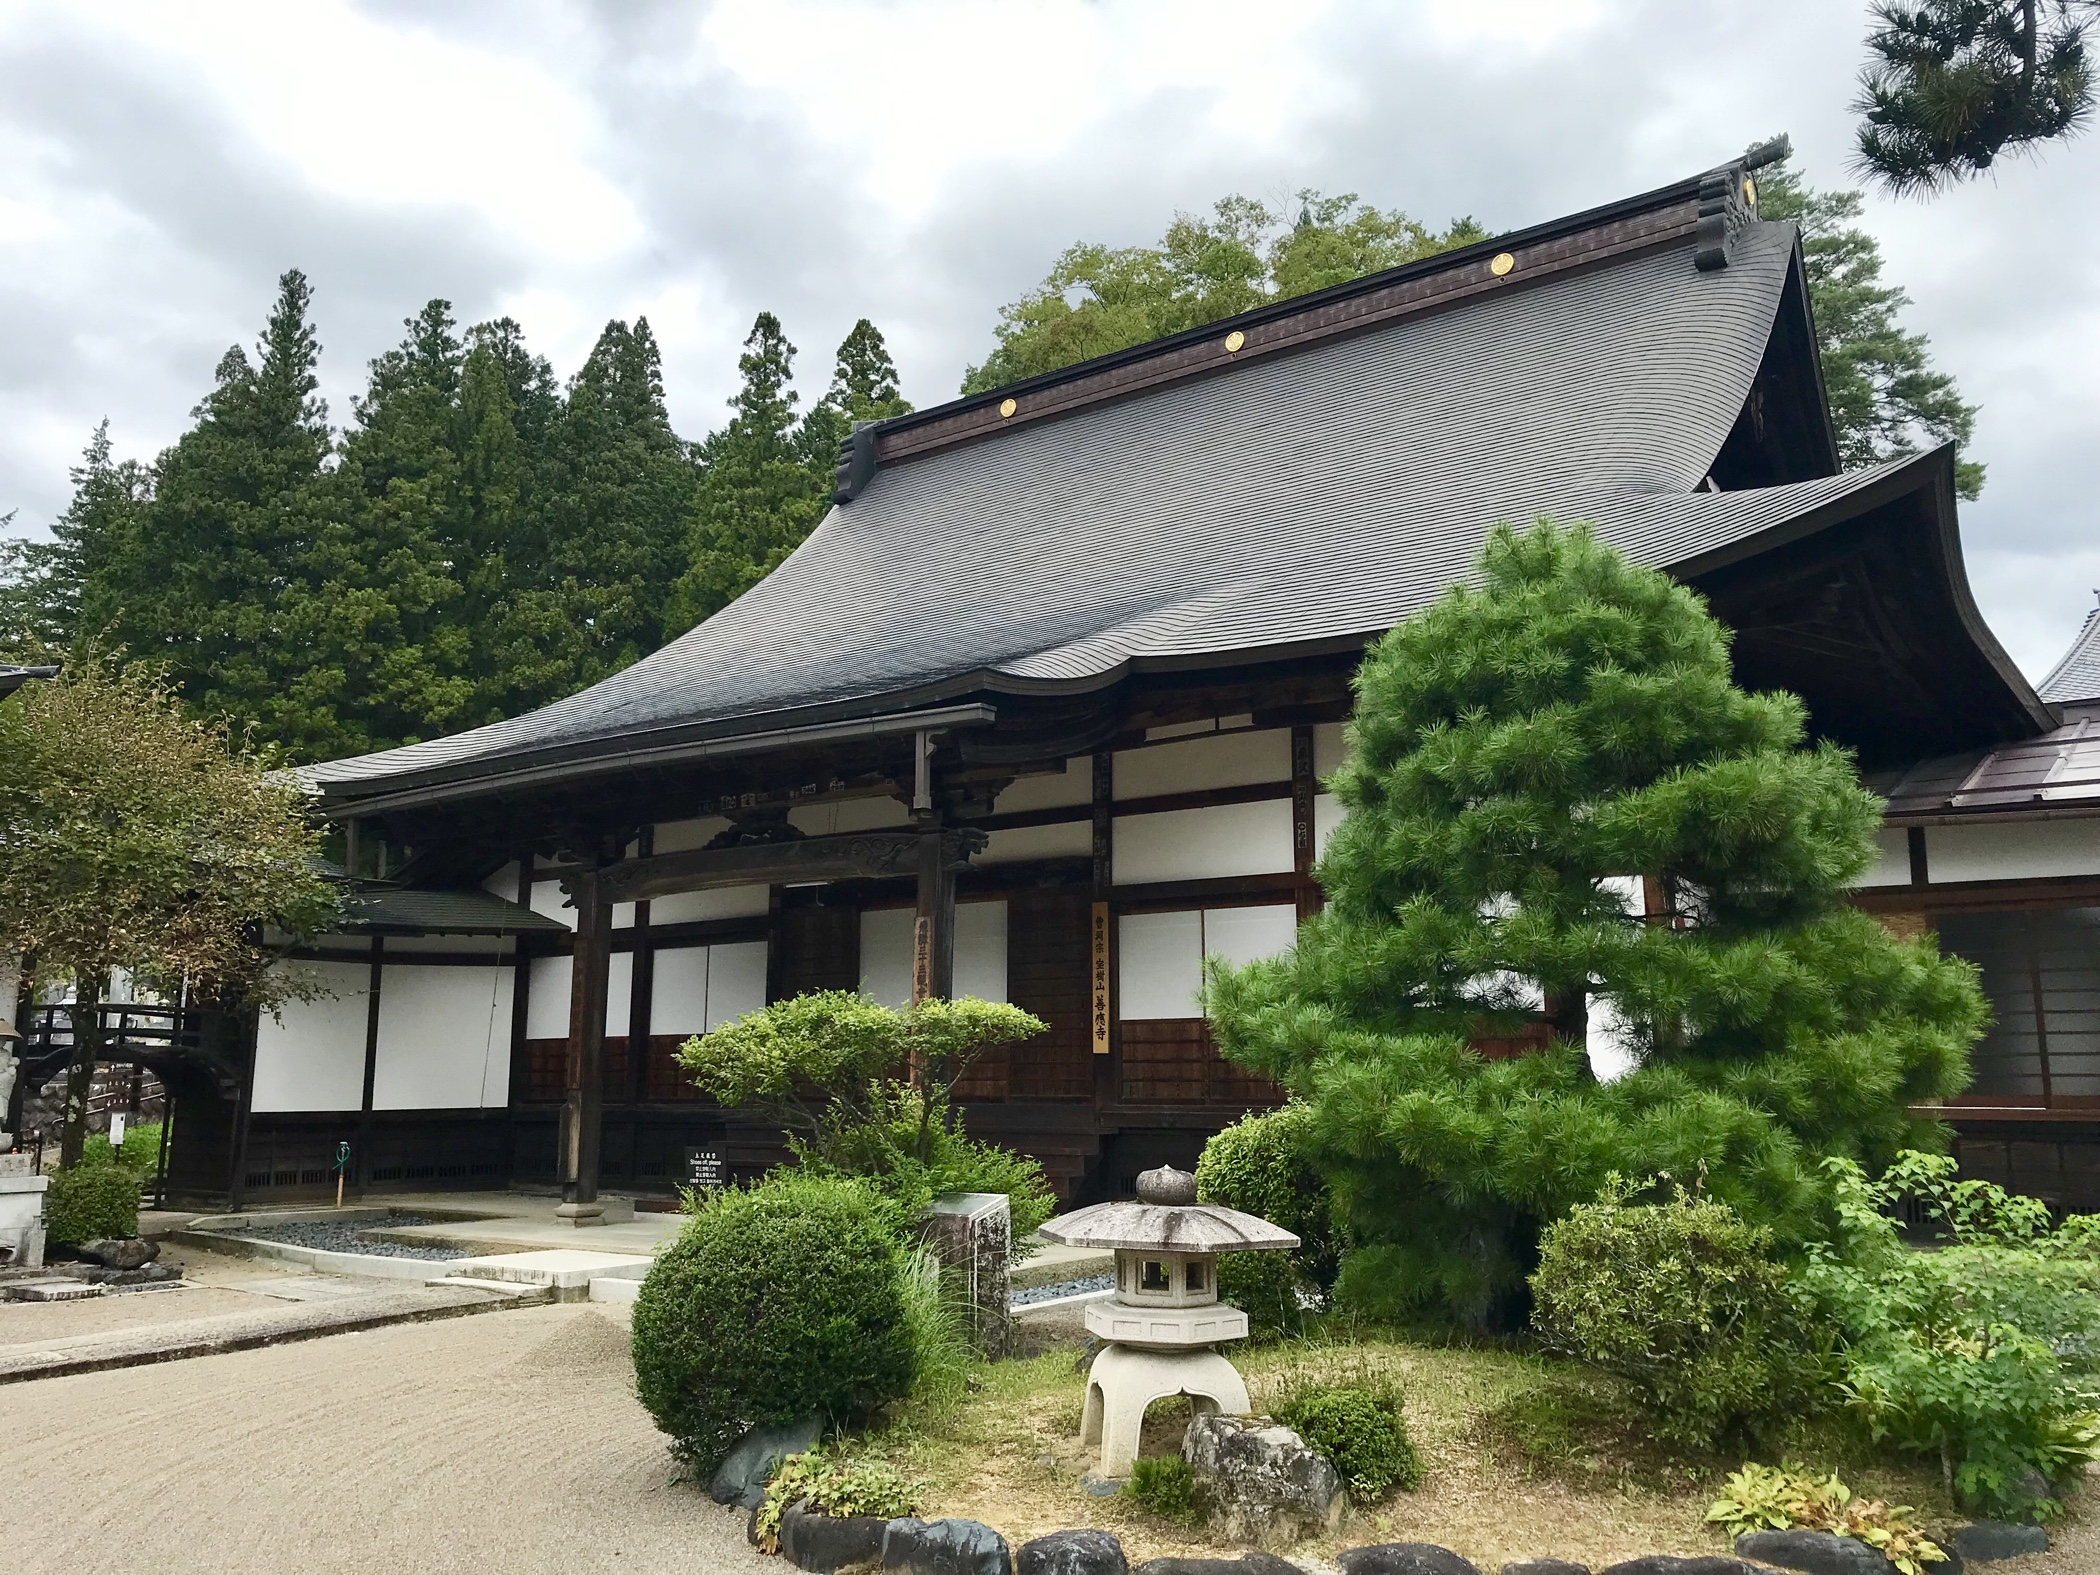 Takayama, Japan - Temples And Shrines